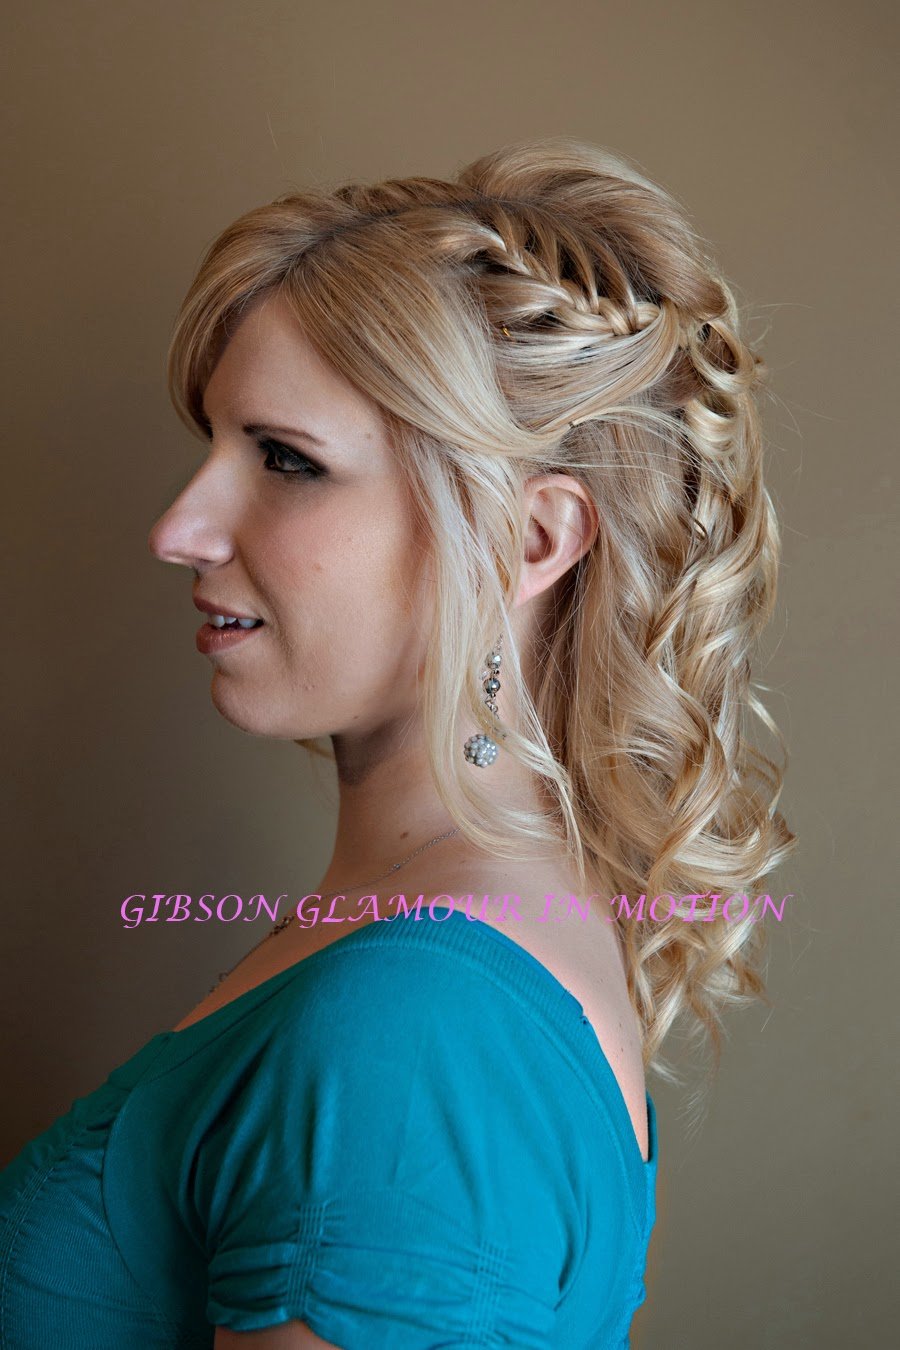 Gibson hair and makeup